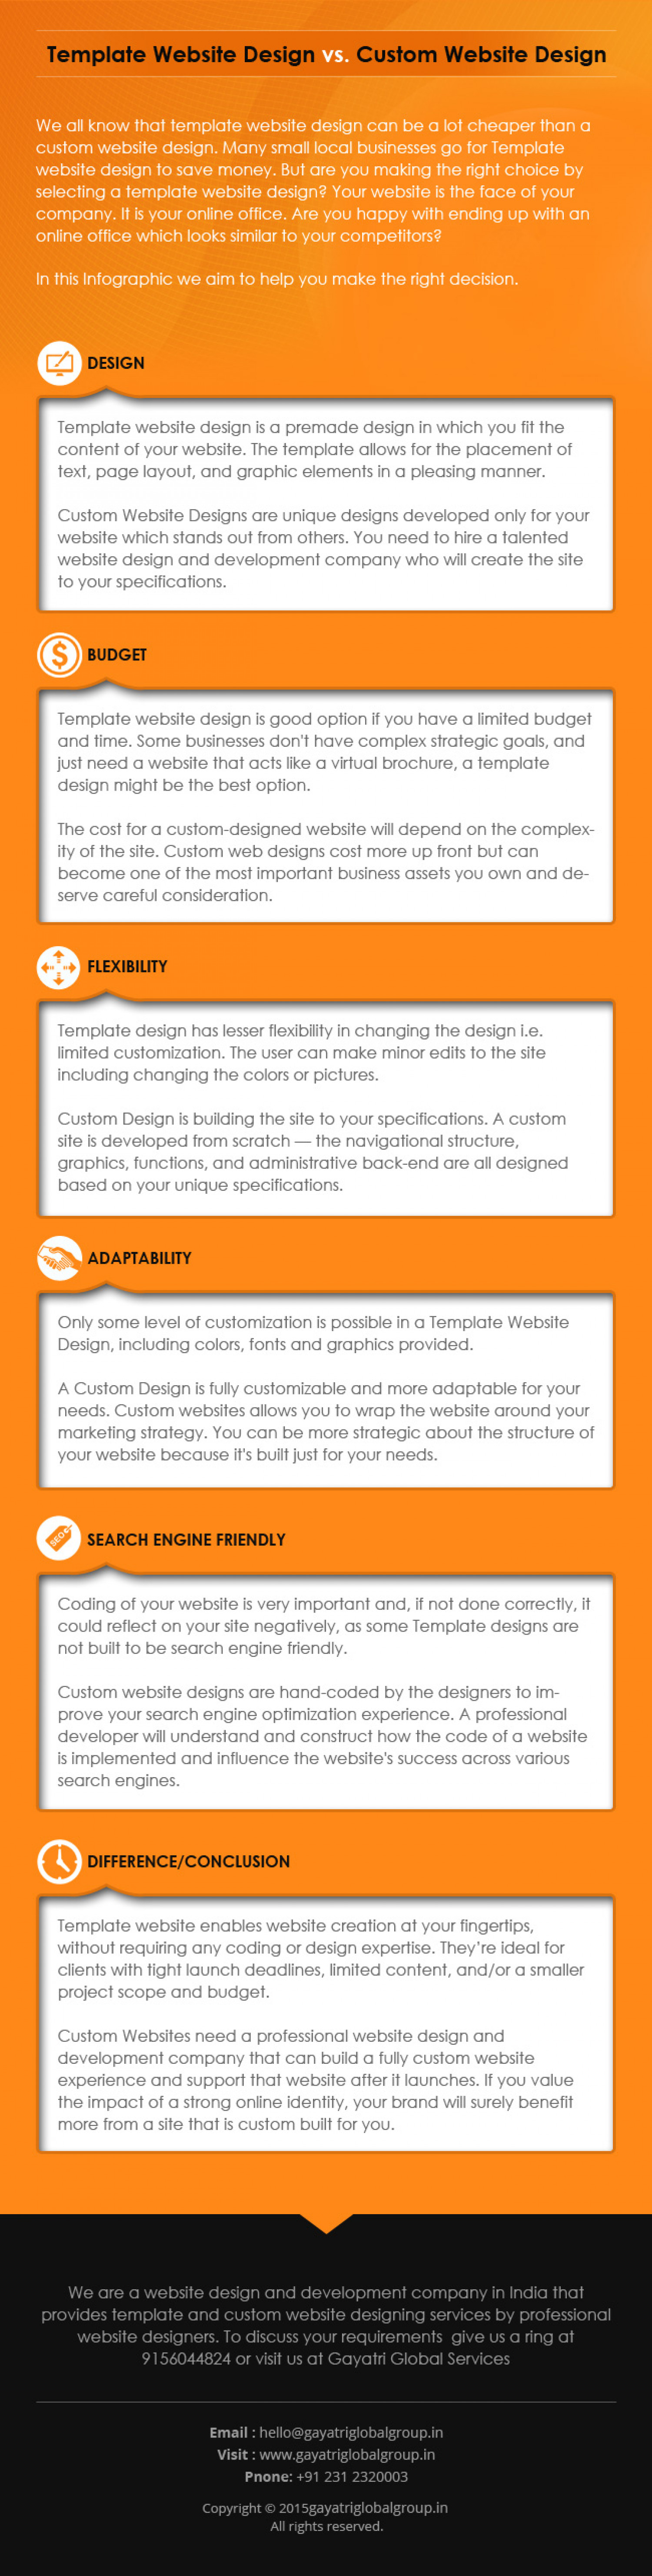 infographic website template